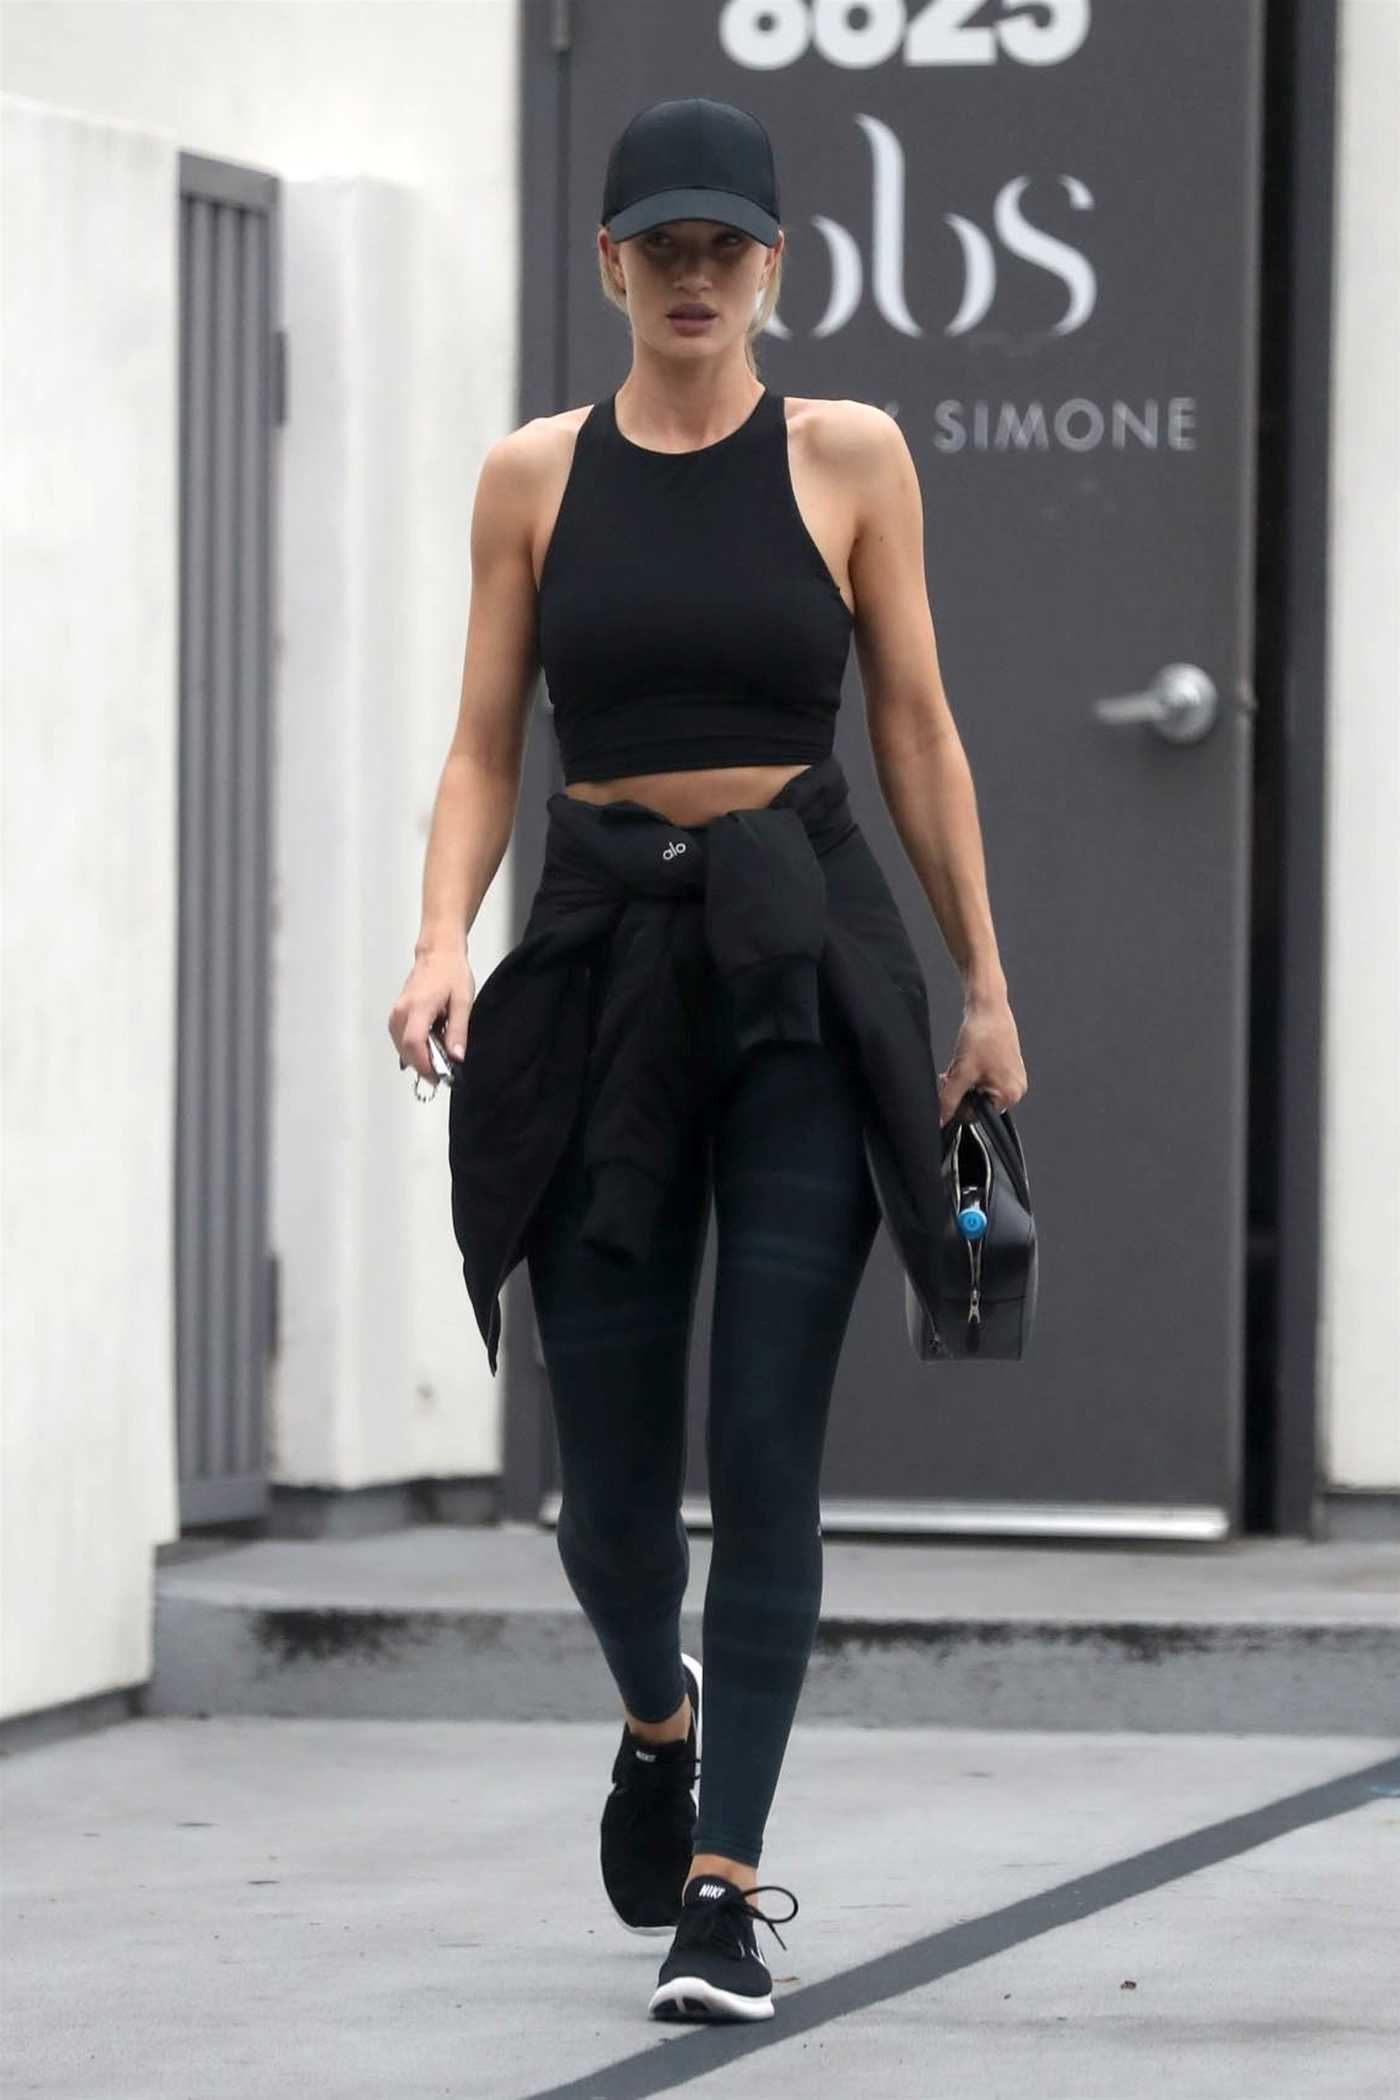 Rosie Huntington-Whiteley Leaves the Body By Simone Gym in West Hollywood 05/24/2018